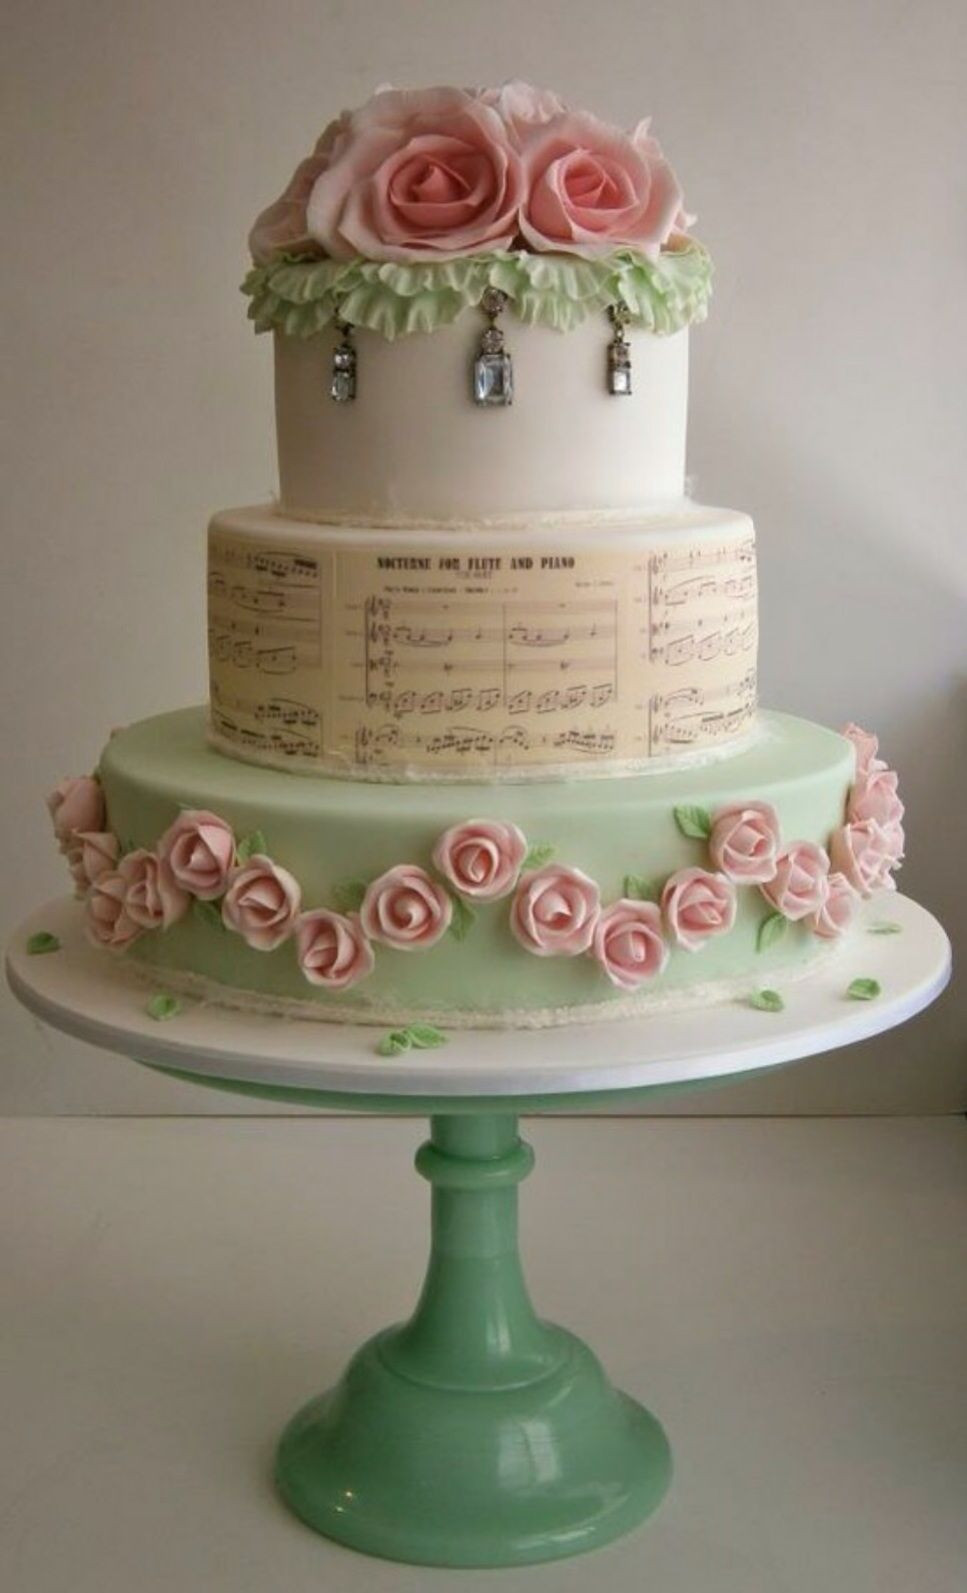 Best ideas about Shabby Chic Wedding Cake . Save or Pin Shabby Chic Wedding Cake Cakes Now.